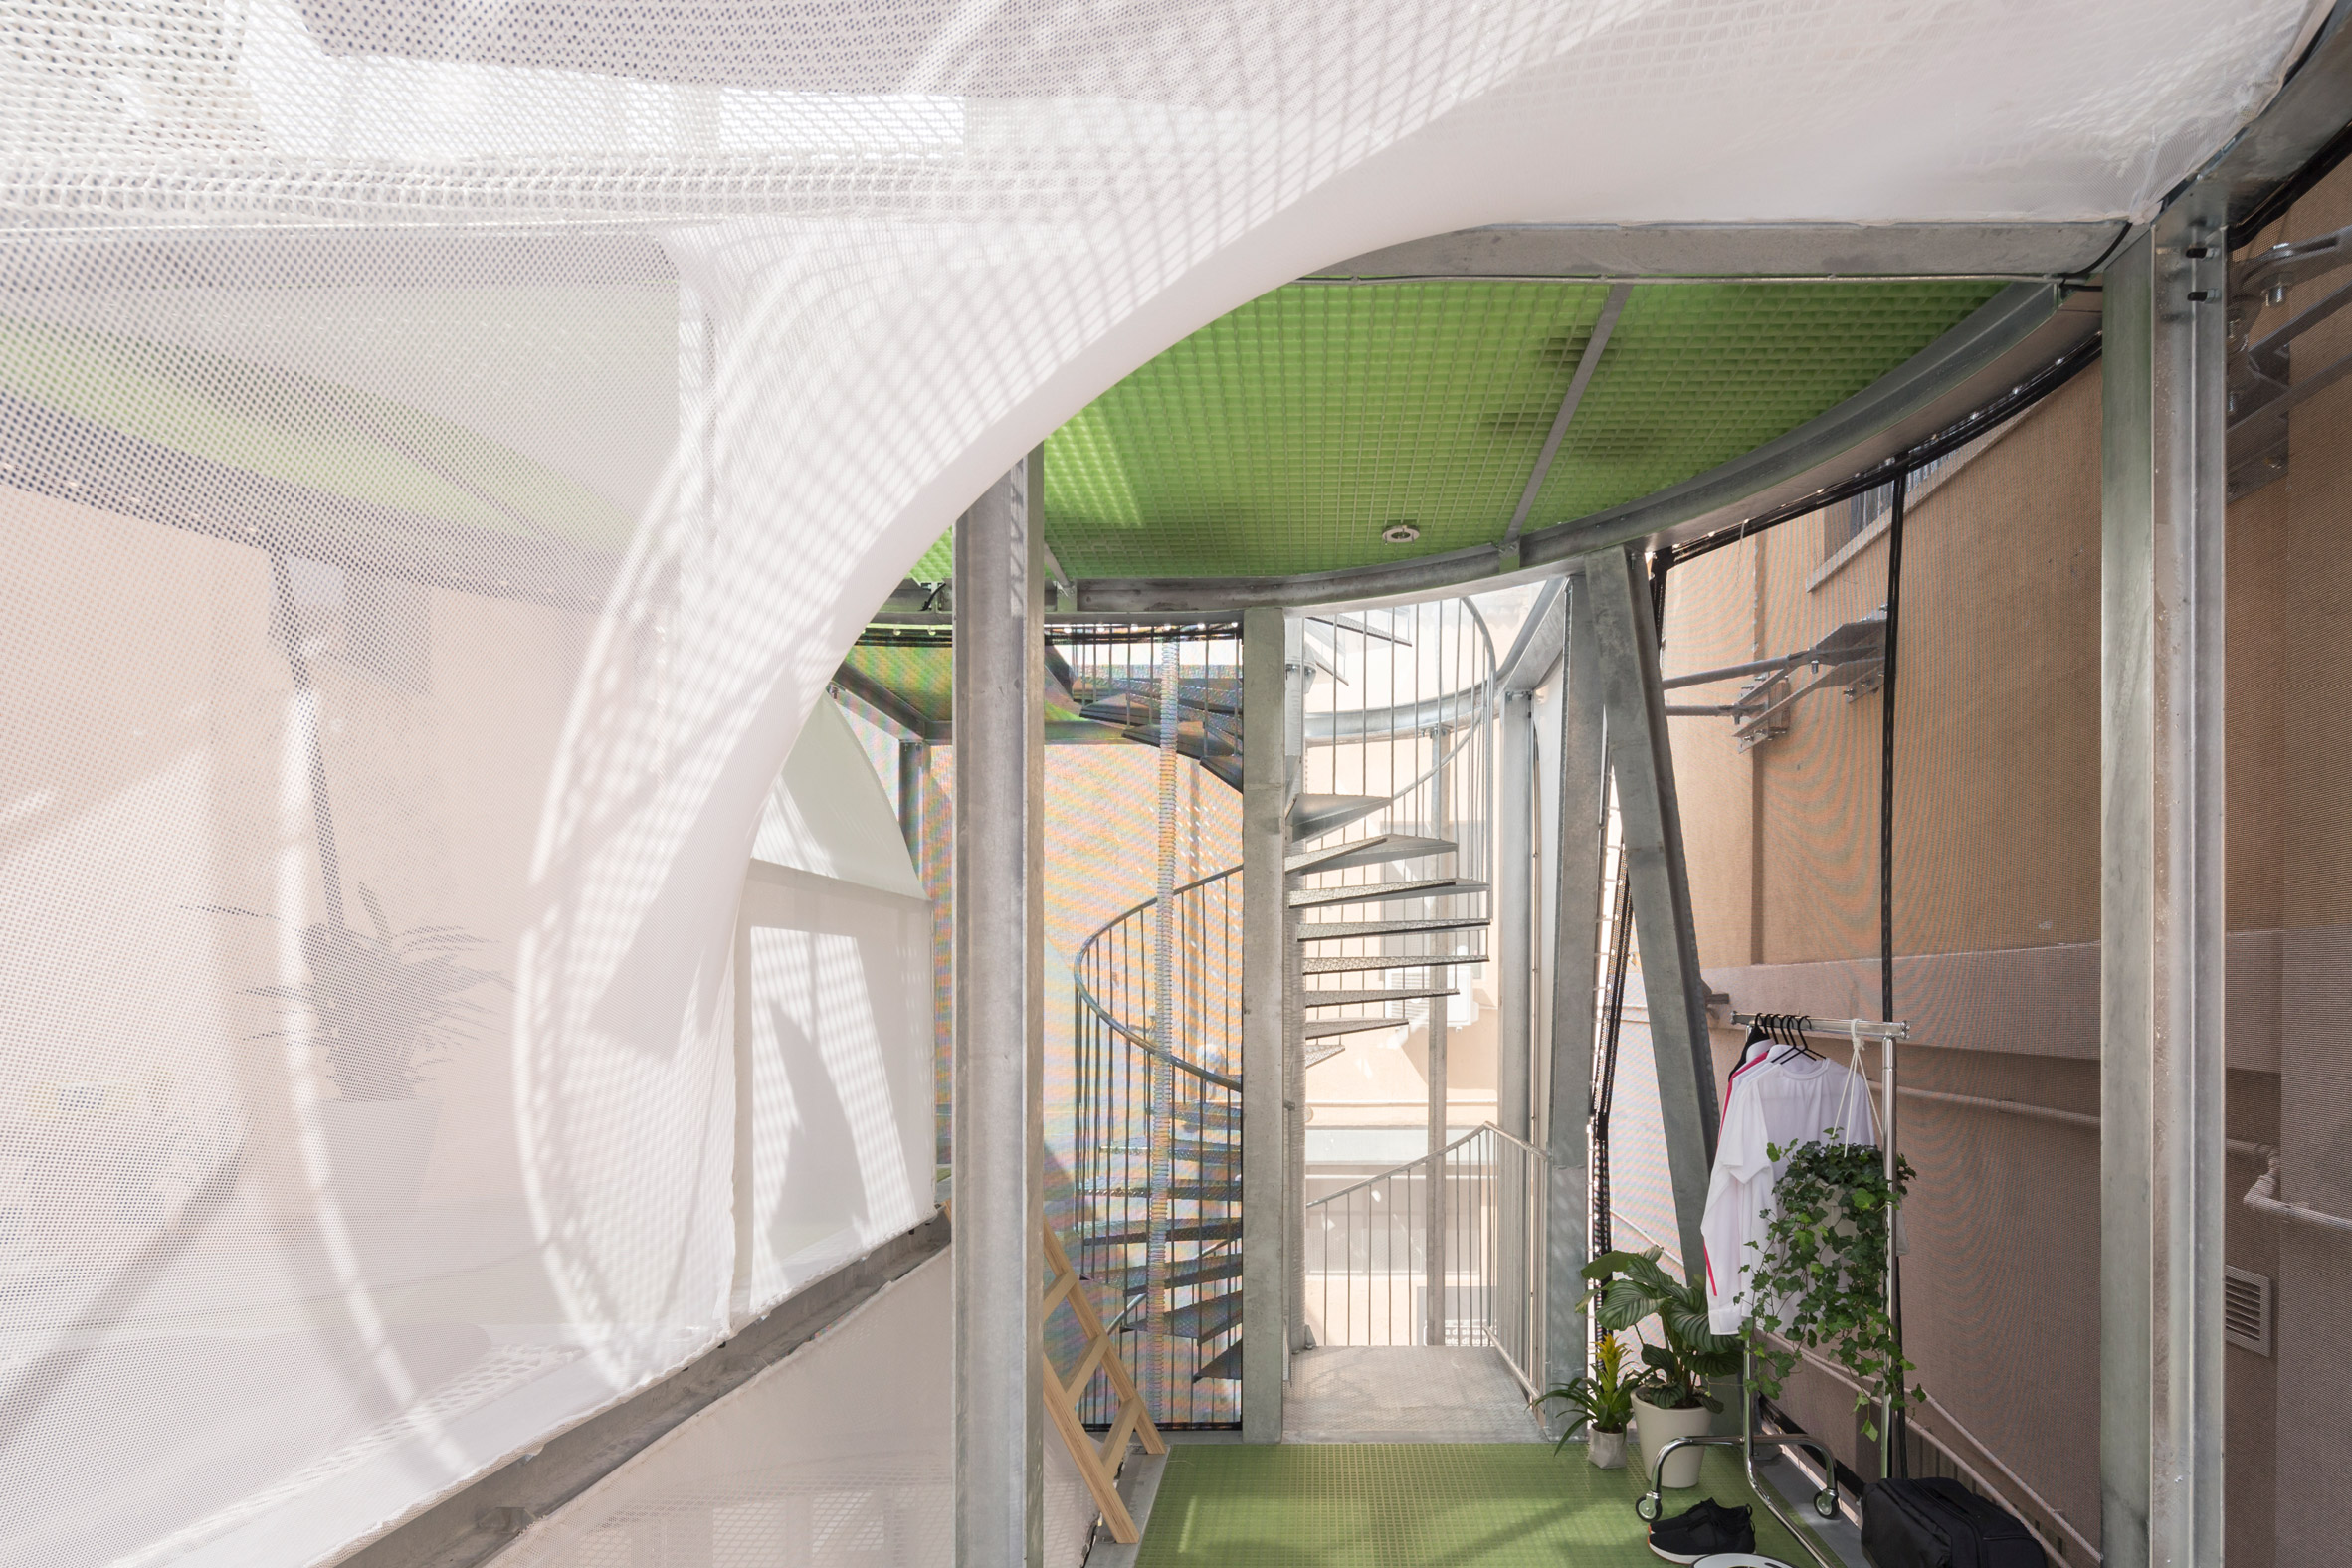 This Sustainable Housing Prototype Features Walls Made Of